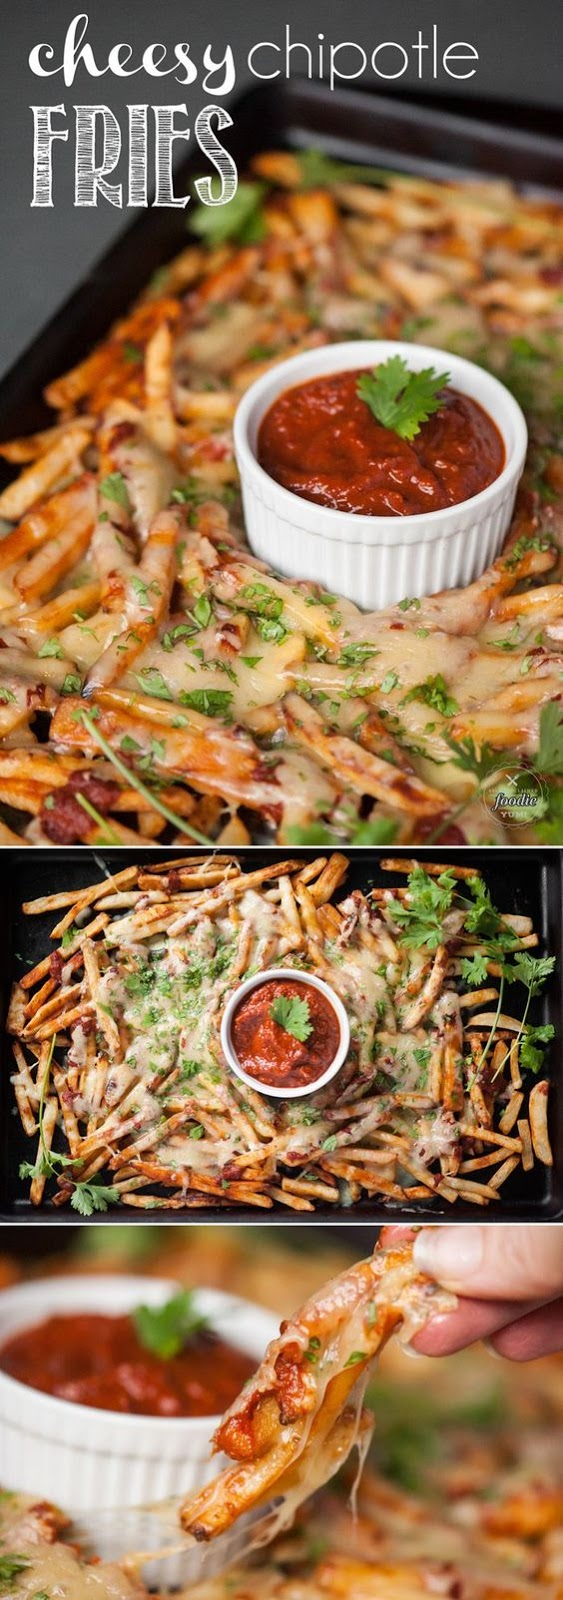 Cheesy Chipotle Fries